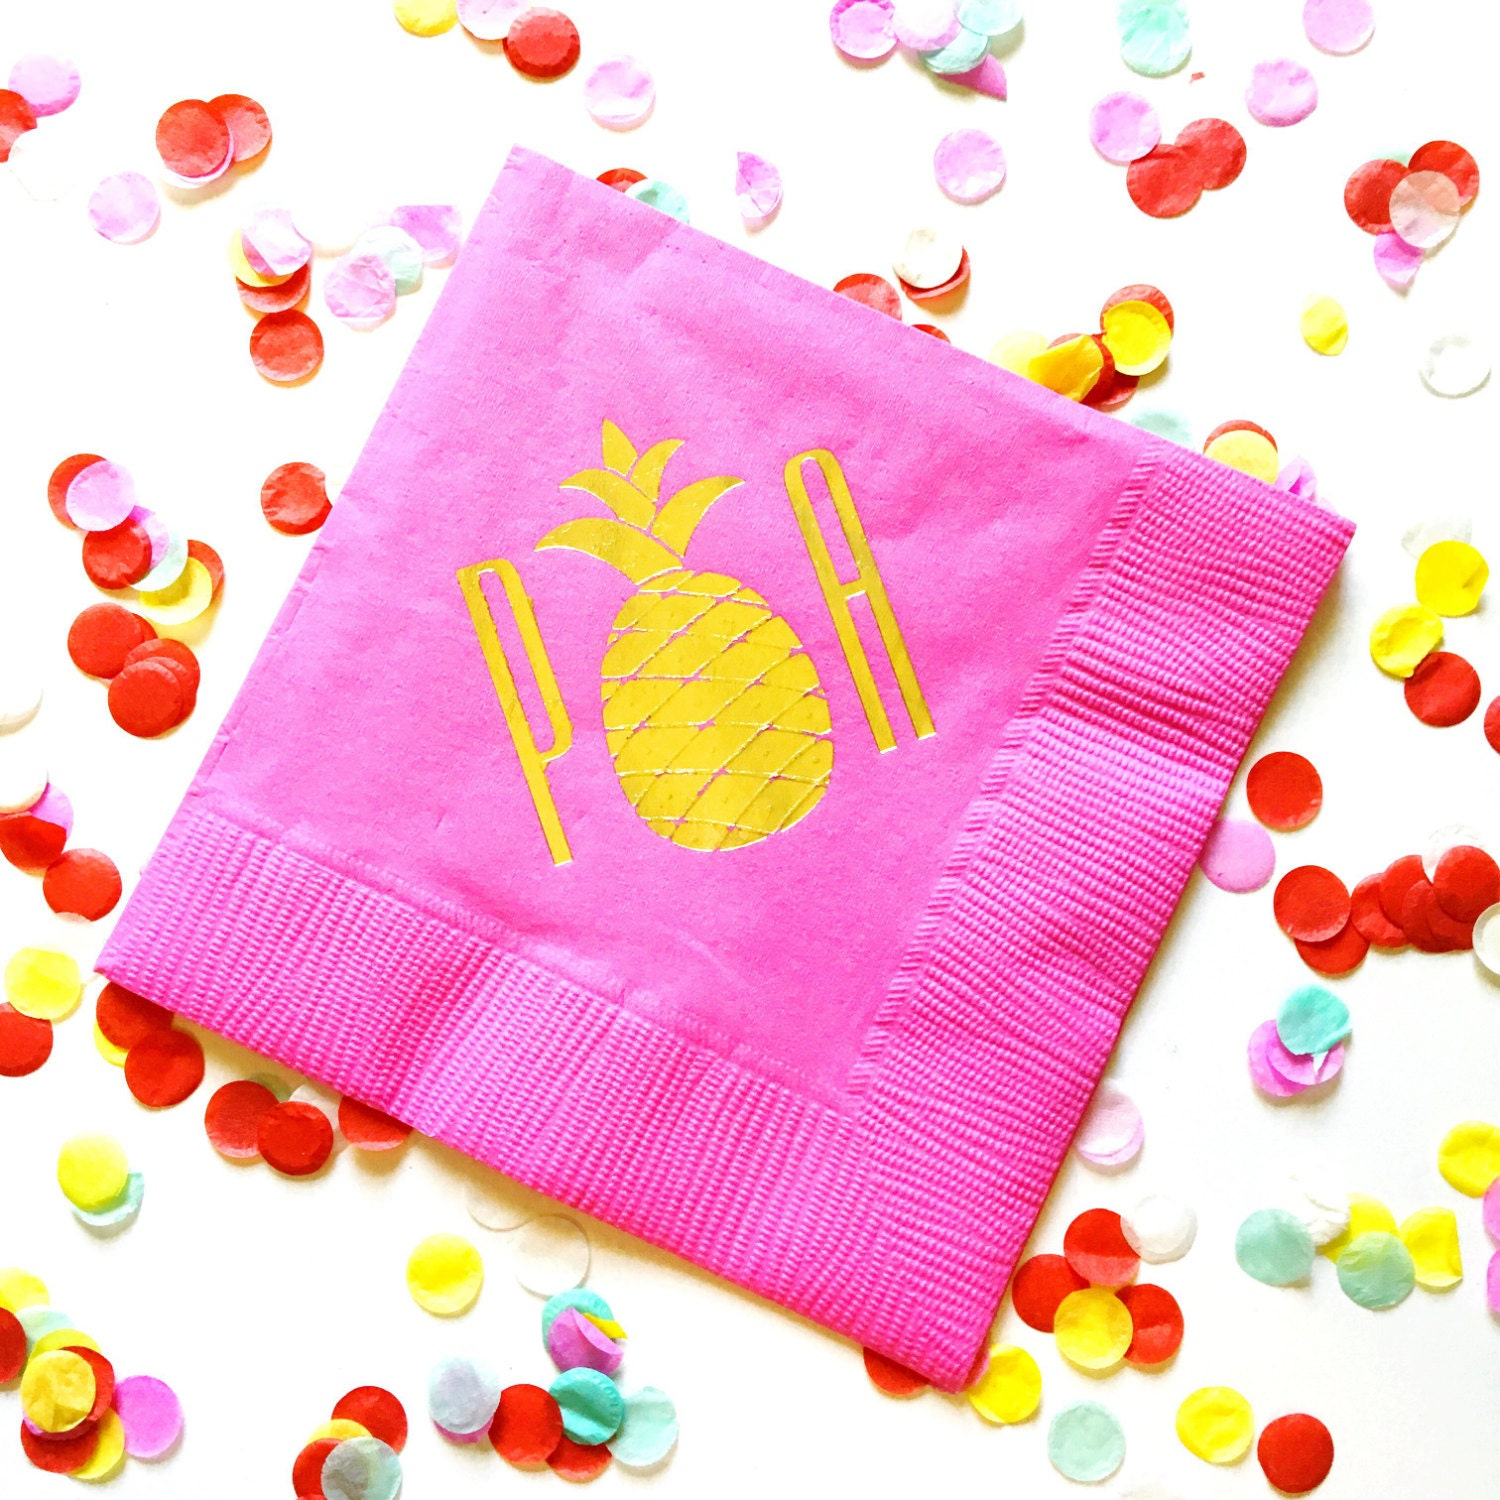 Pineapple Napkins Monogrammed Napkins Personalized Party